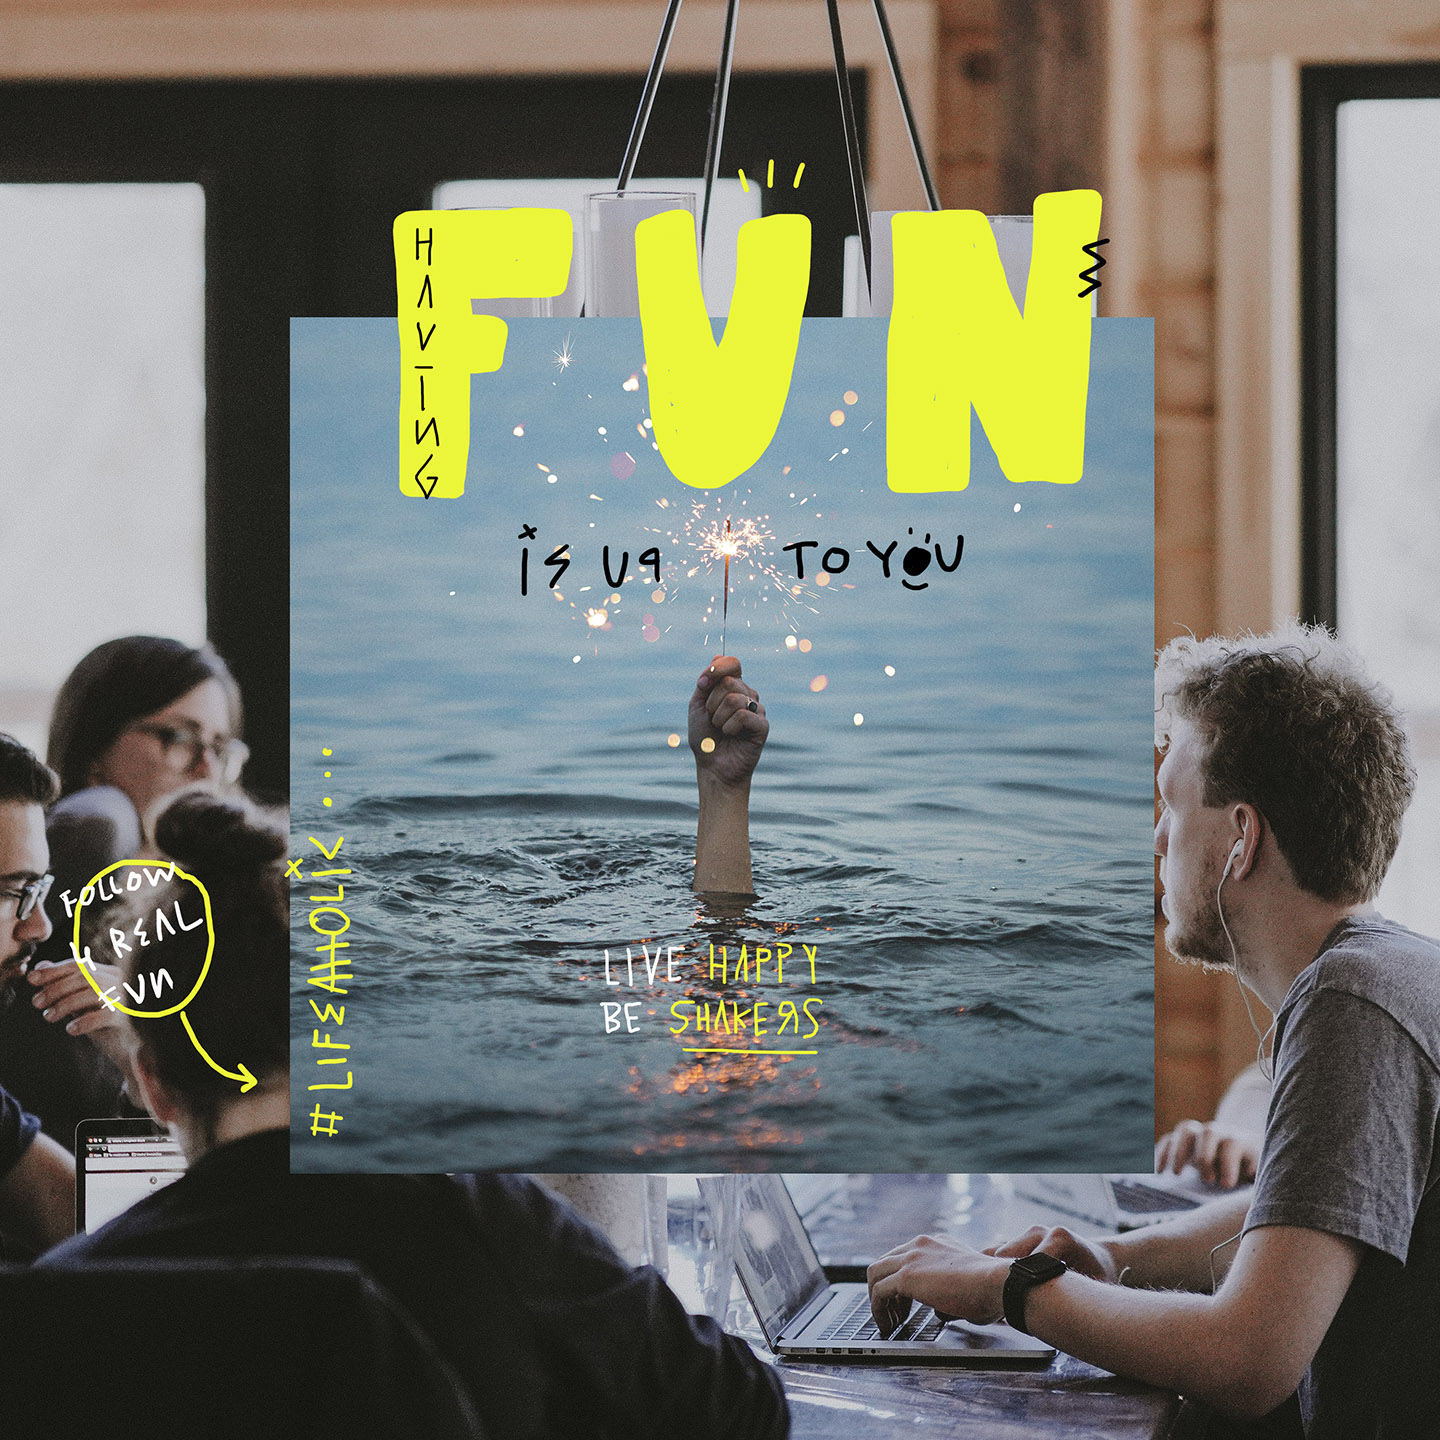 fun_is_up_to_you